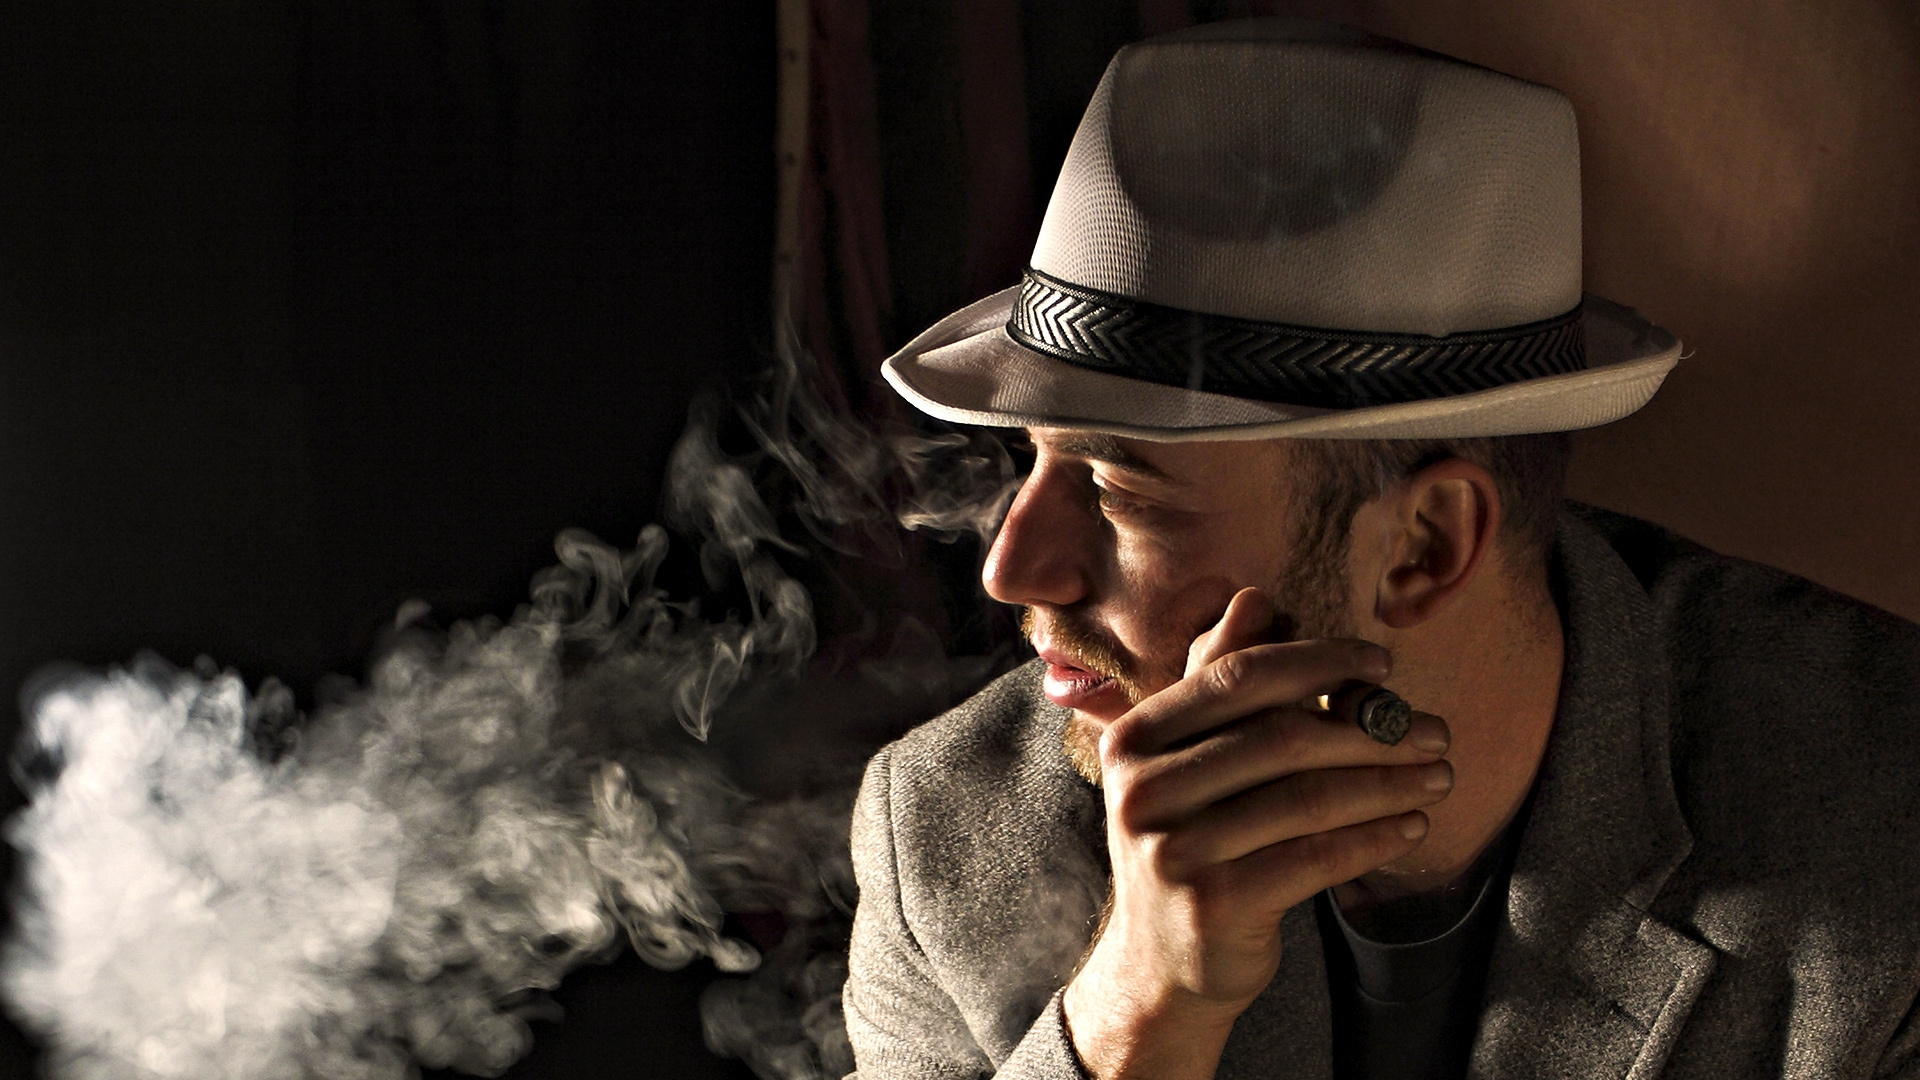 download wallpaper 1920x1080 man hat cigar smoke